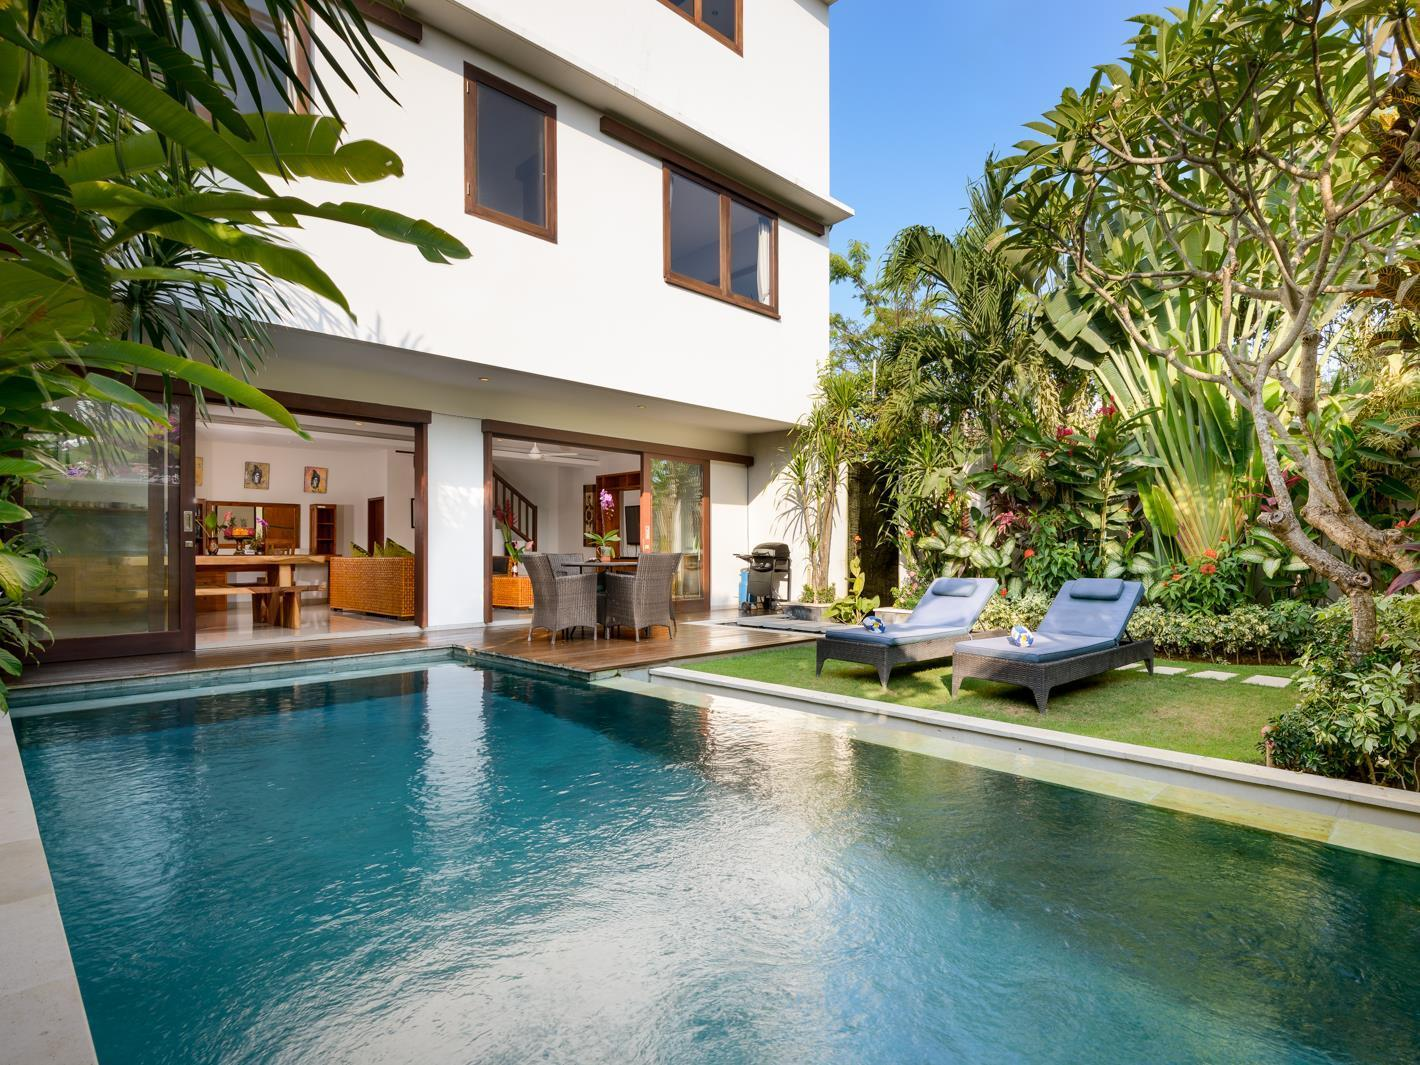 Villa Cendana 3 bed townhouse with private pool